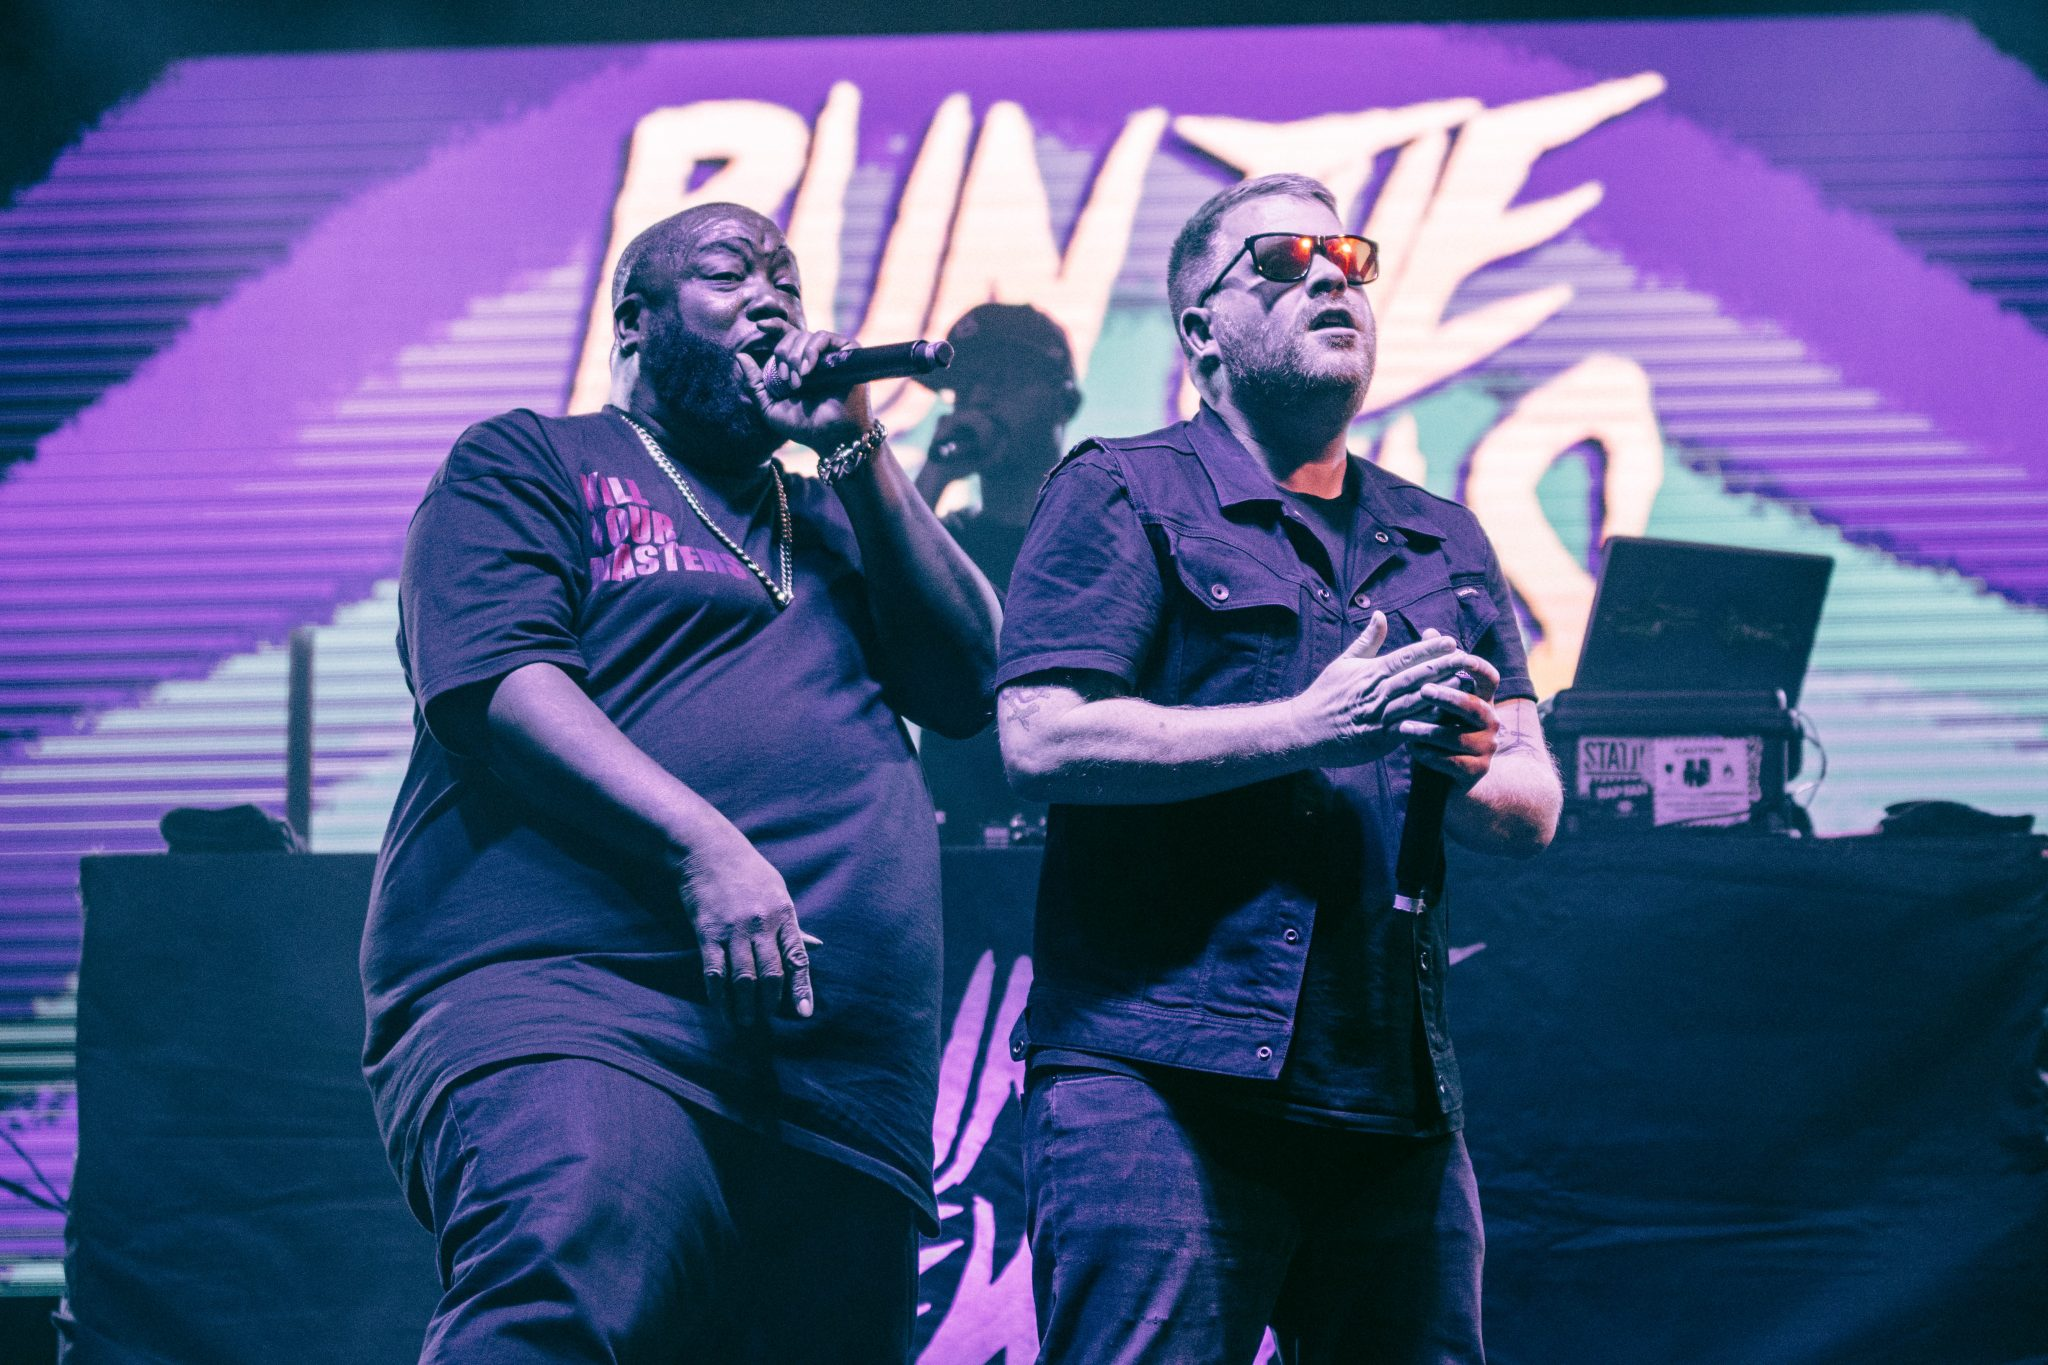 WKQX brings Run the Jewels, Biffy Clyro, Sir Sly and more to Chicago